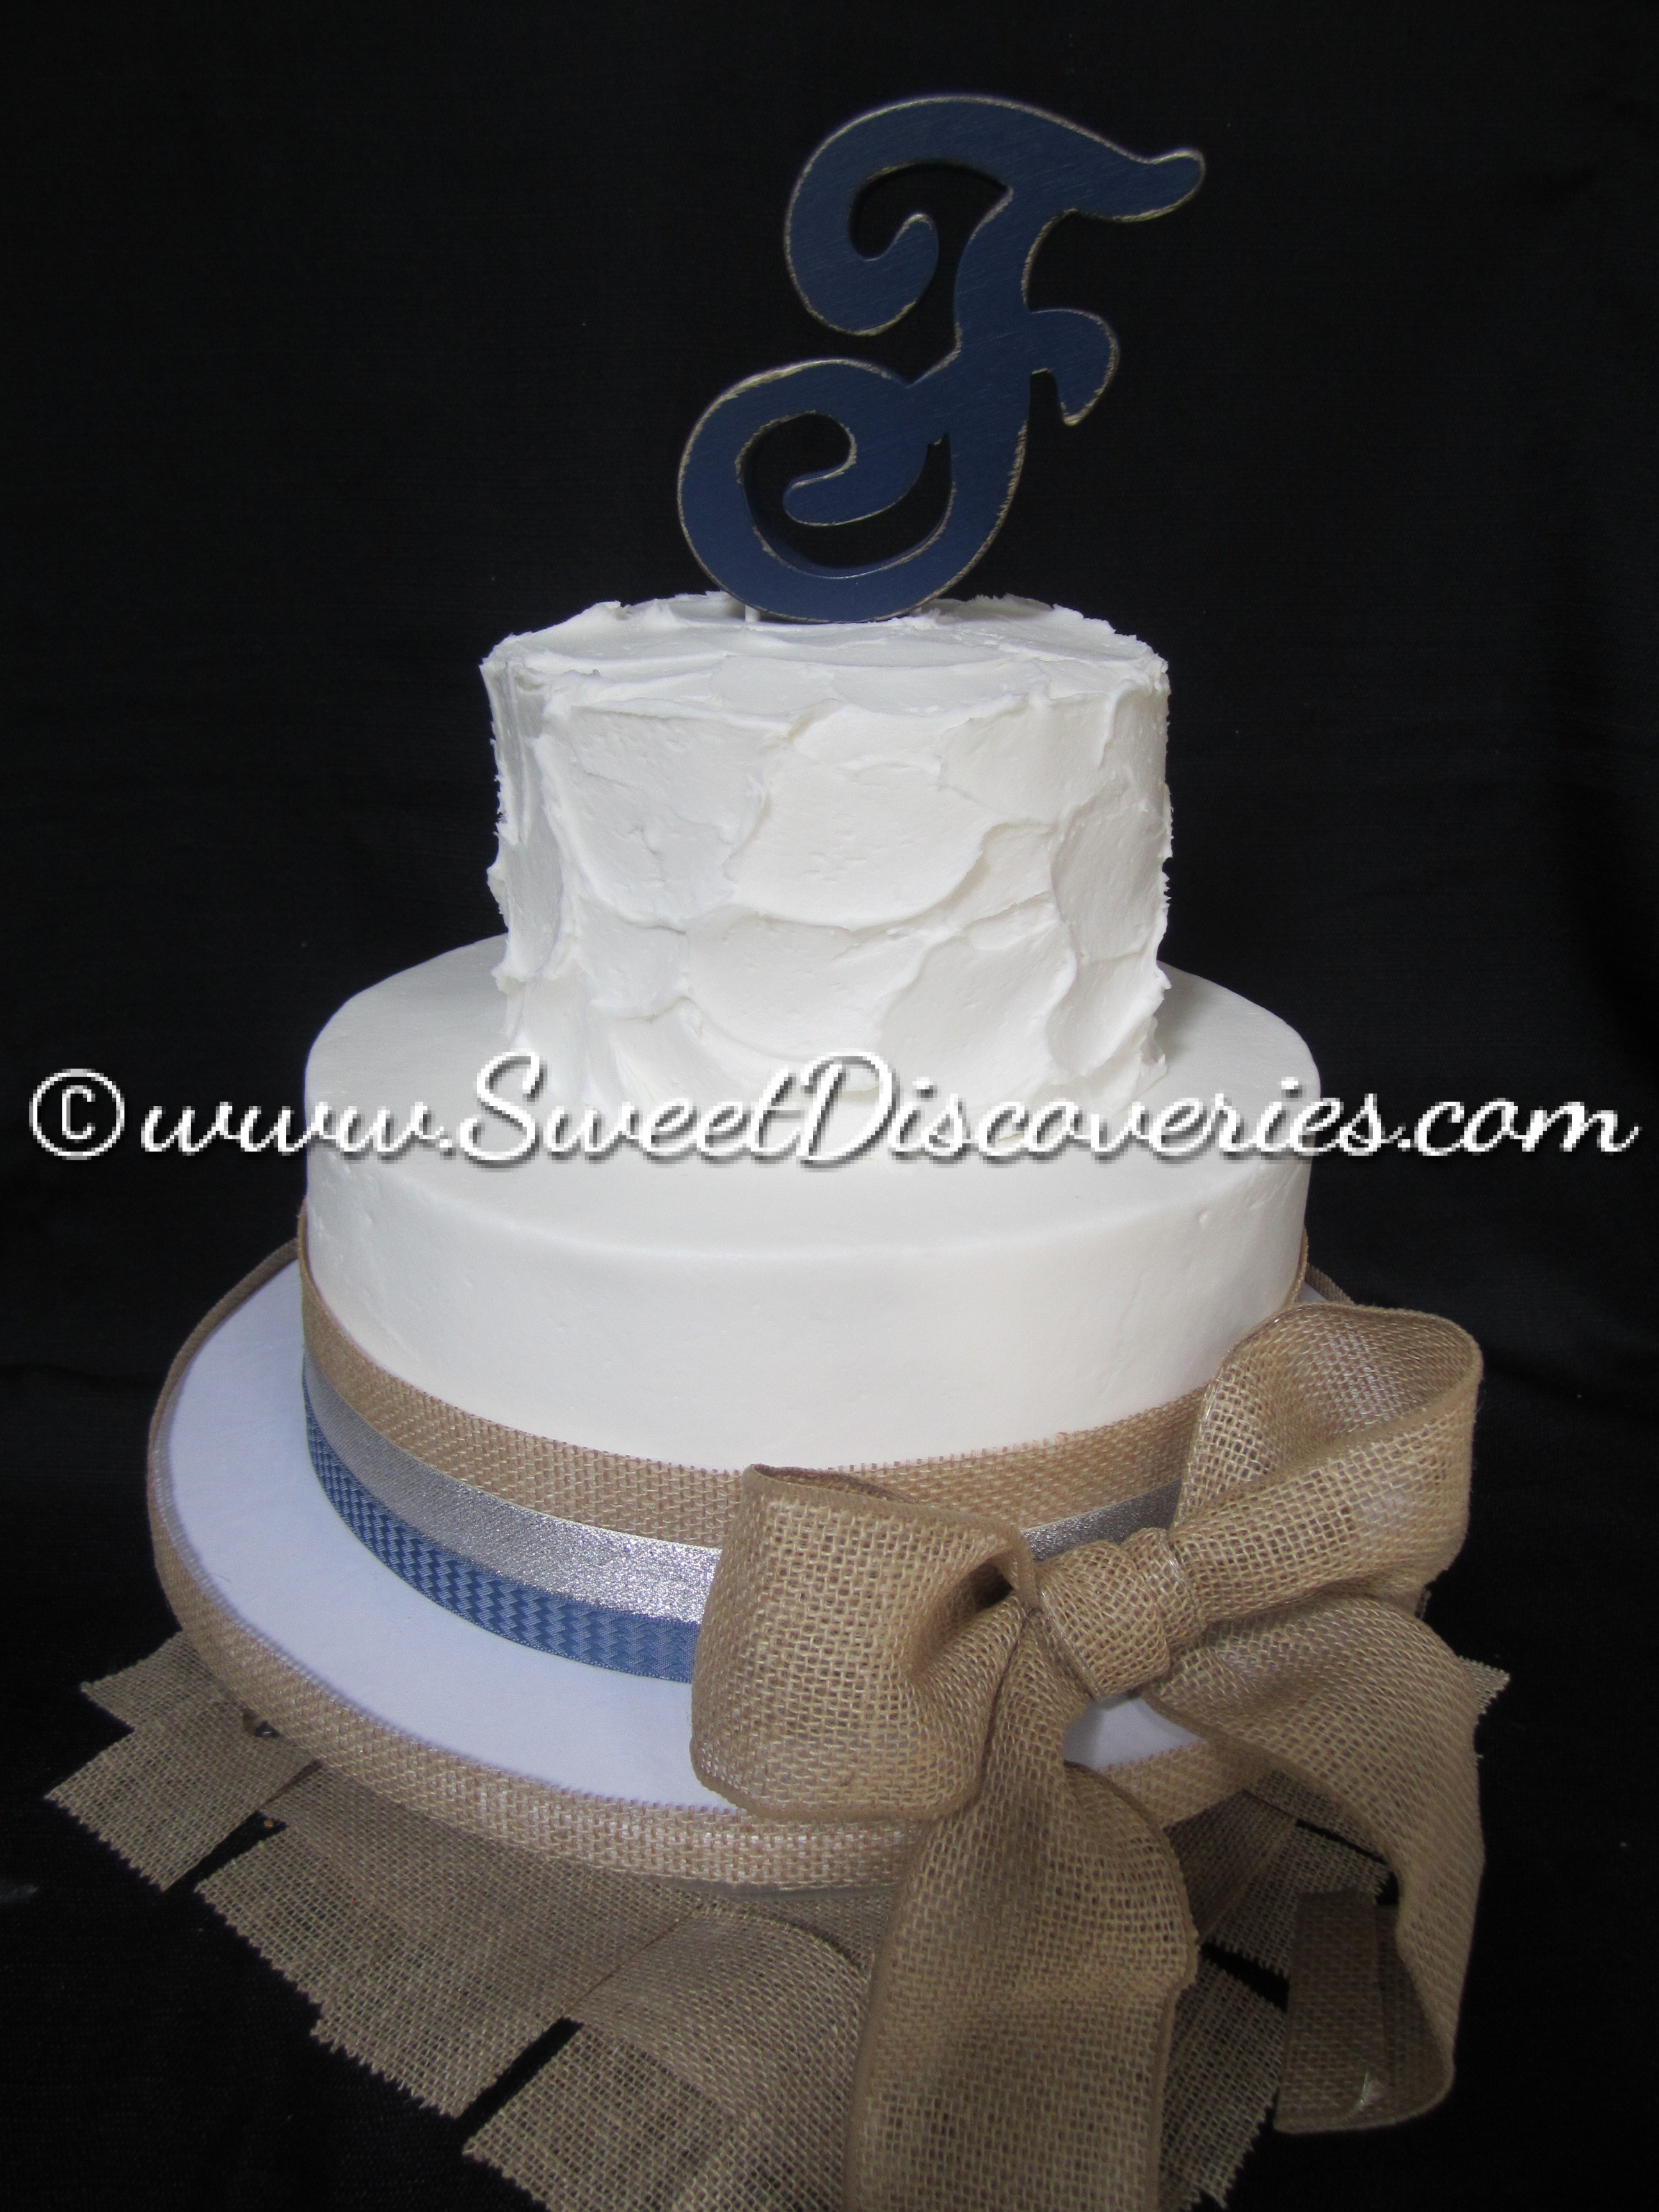 Wedding Cakes Gallery | Sweet Discoveries